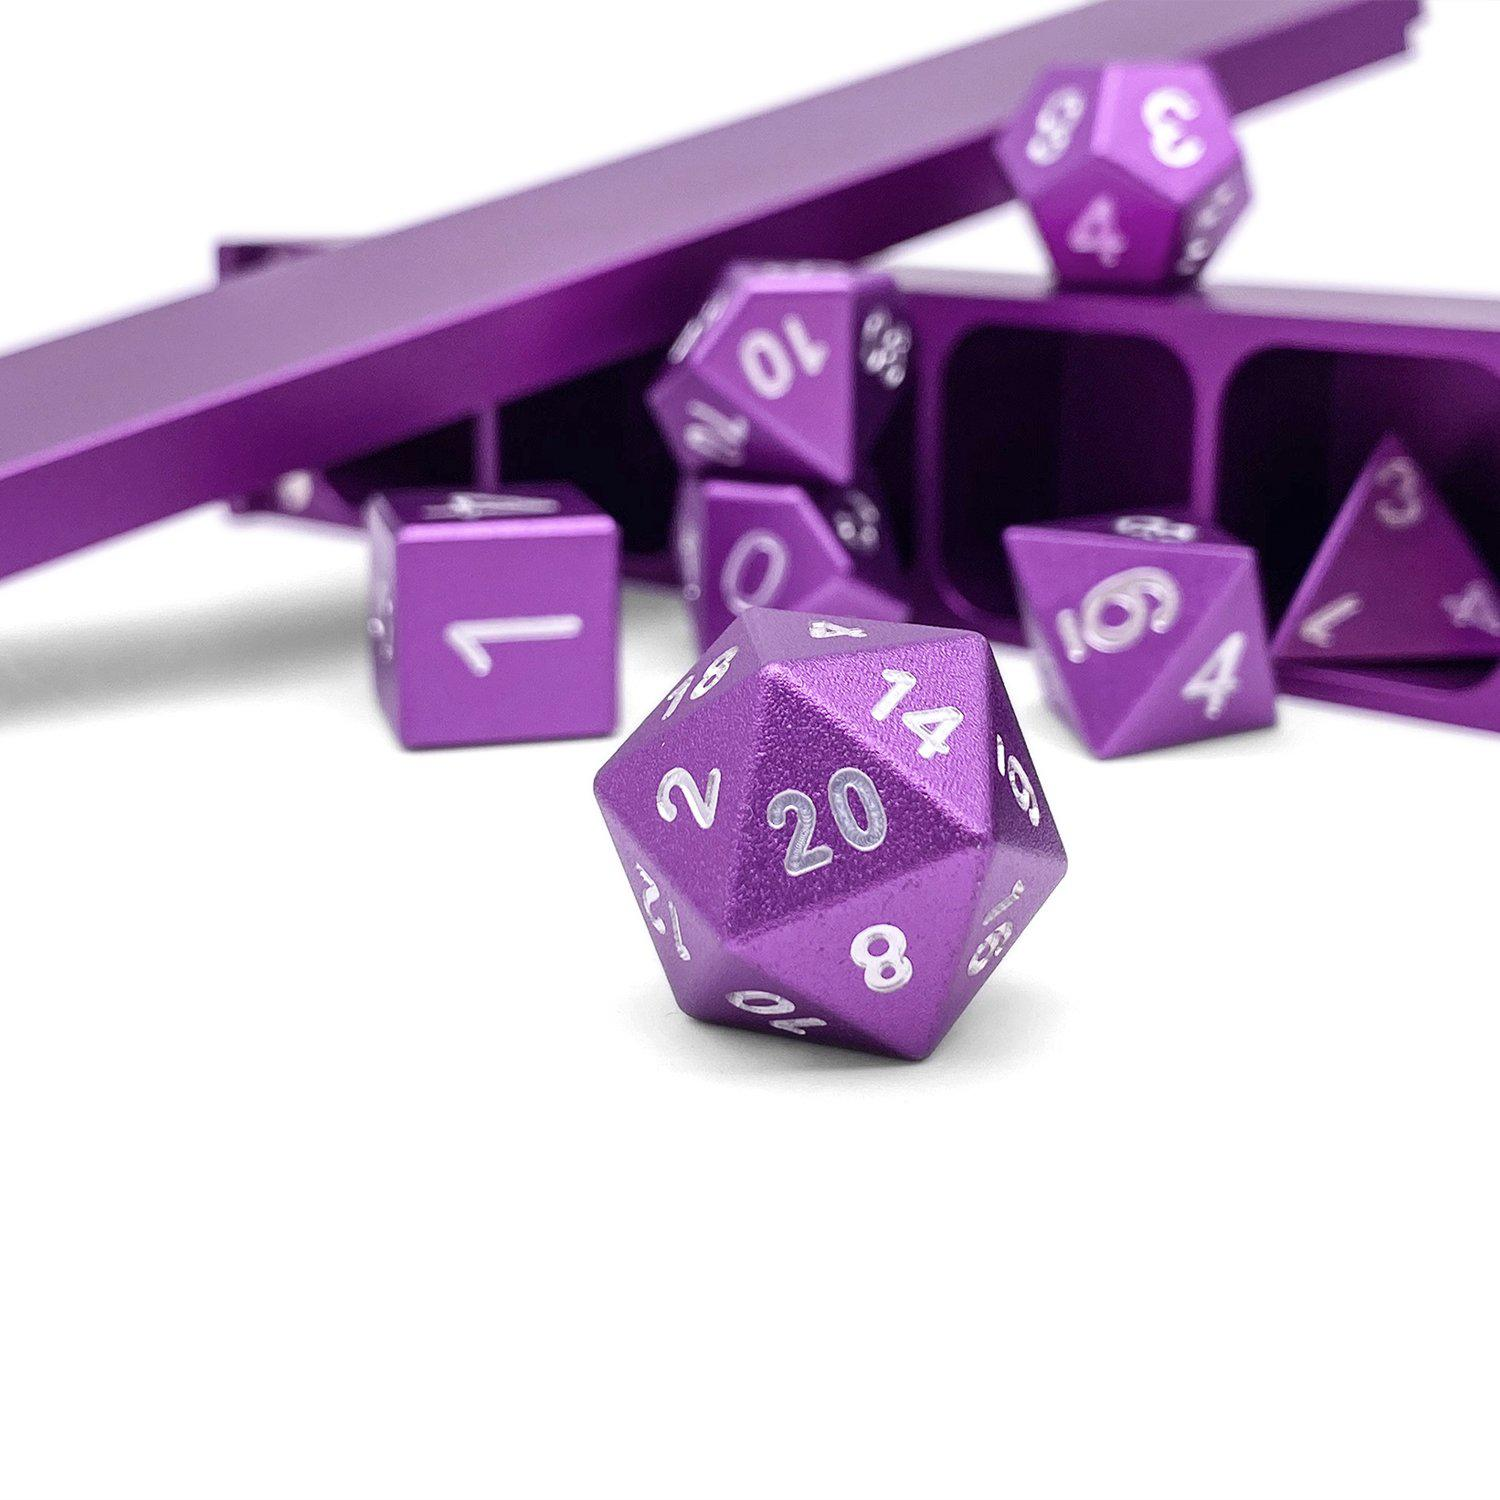 Precision CNC Aluminum Dice Set with Dice Vault – Lich Purple